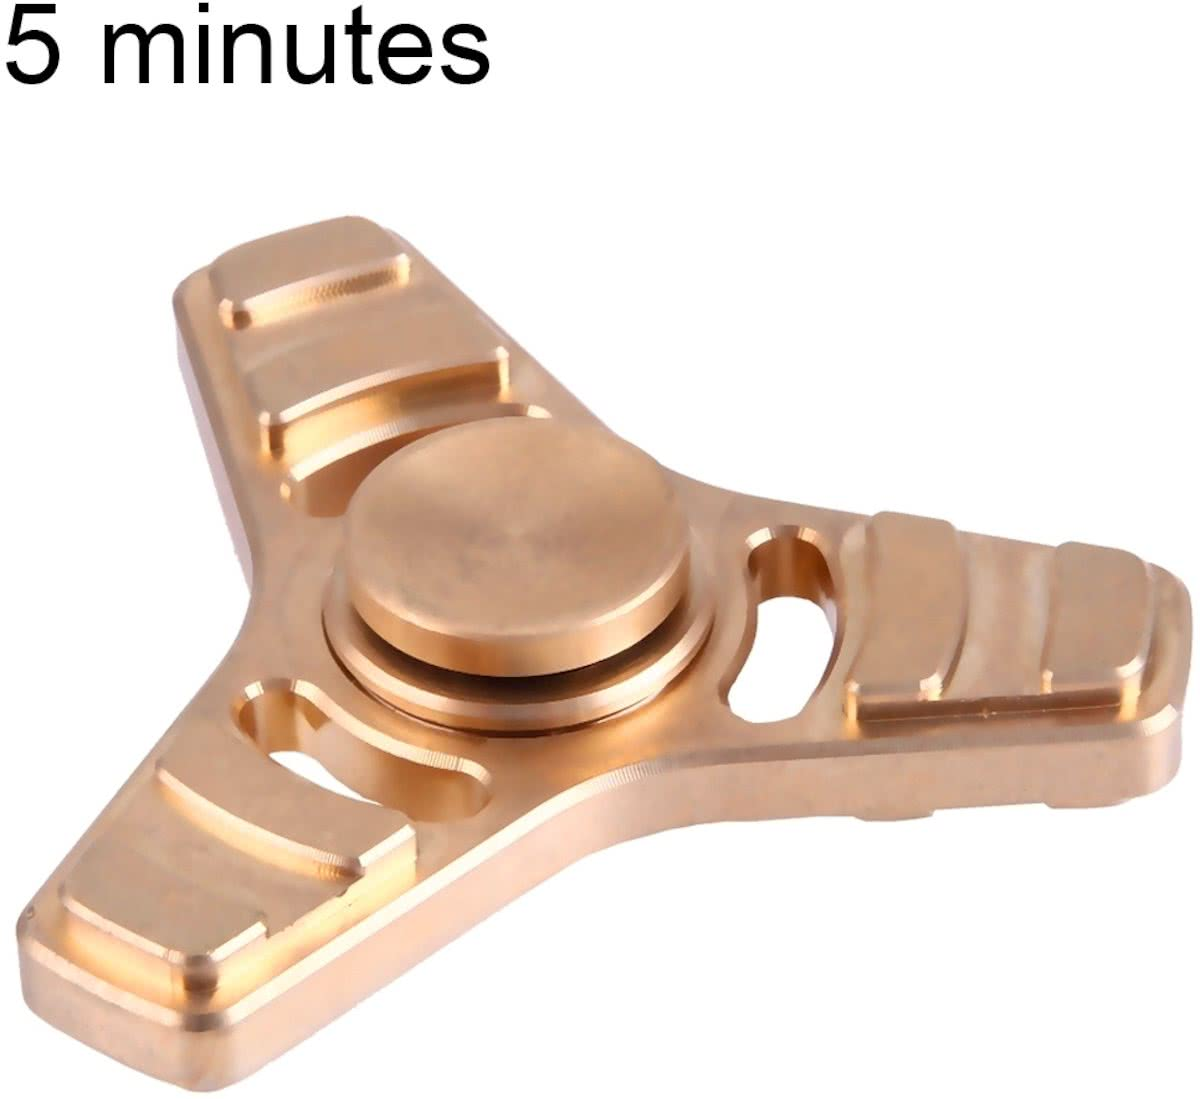 Spinner Toy Stress rooducer Anti-Anxiety Toy voor Children en Adults, 5 Minutes Rotation Time, Copper materiaal, Three Leaves